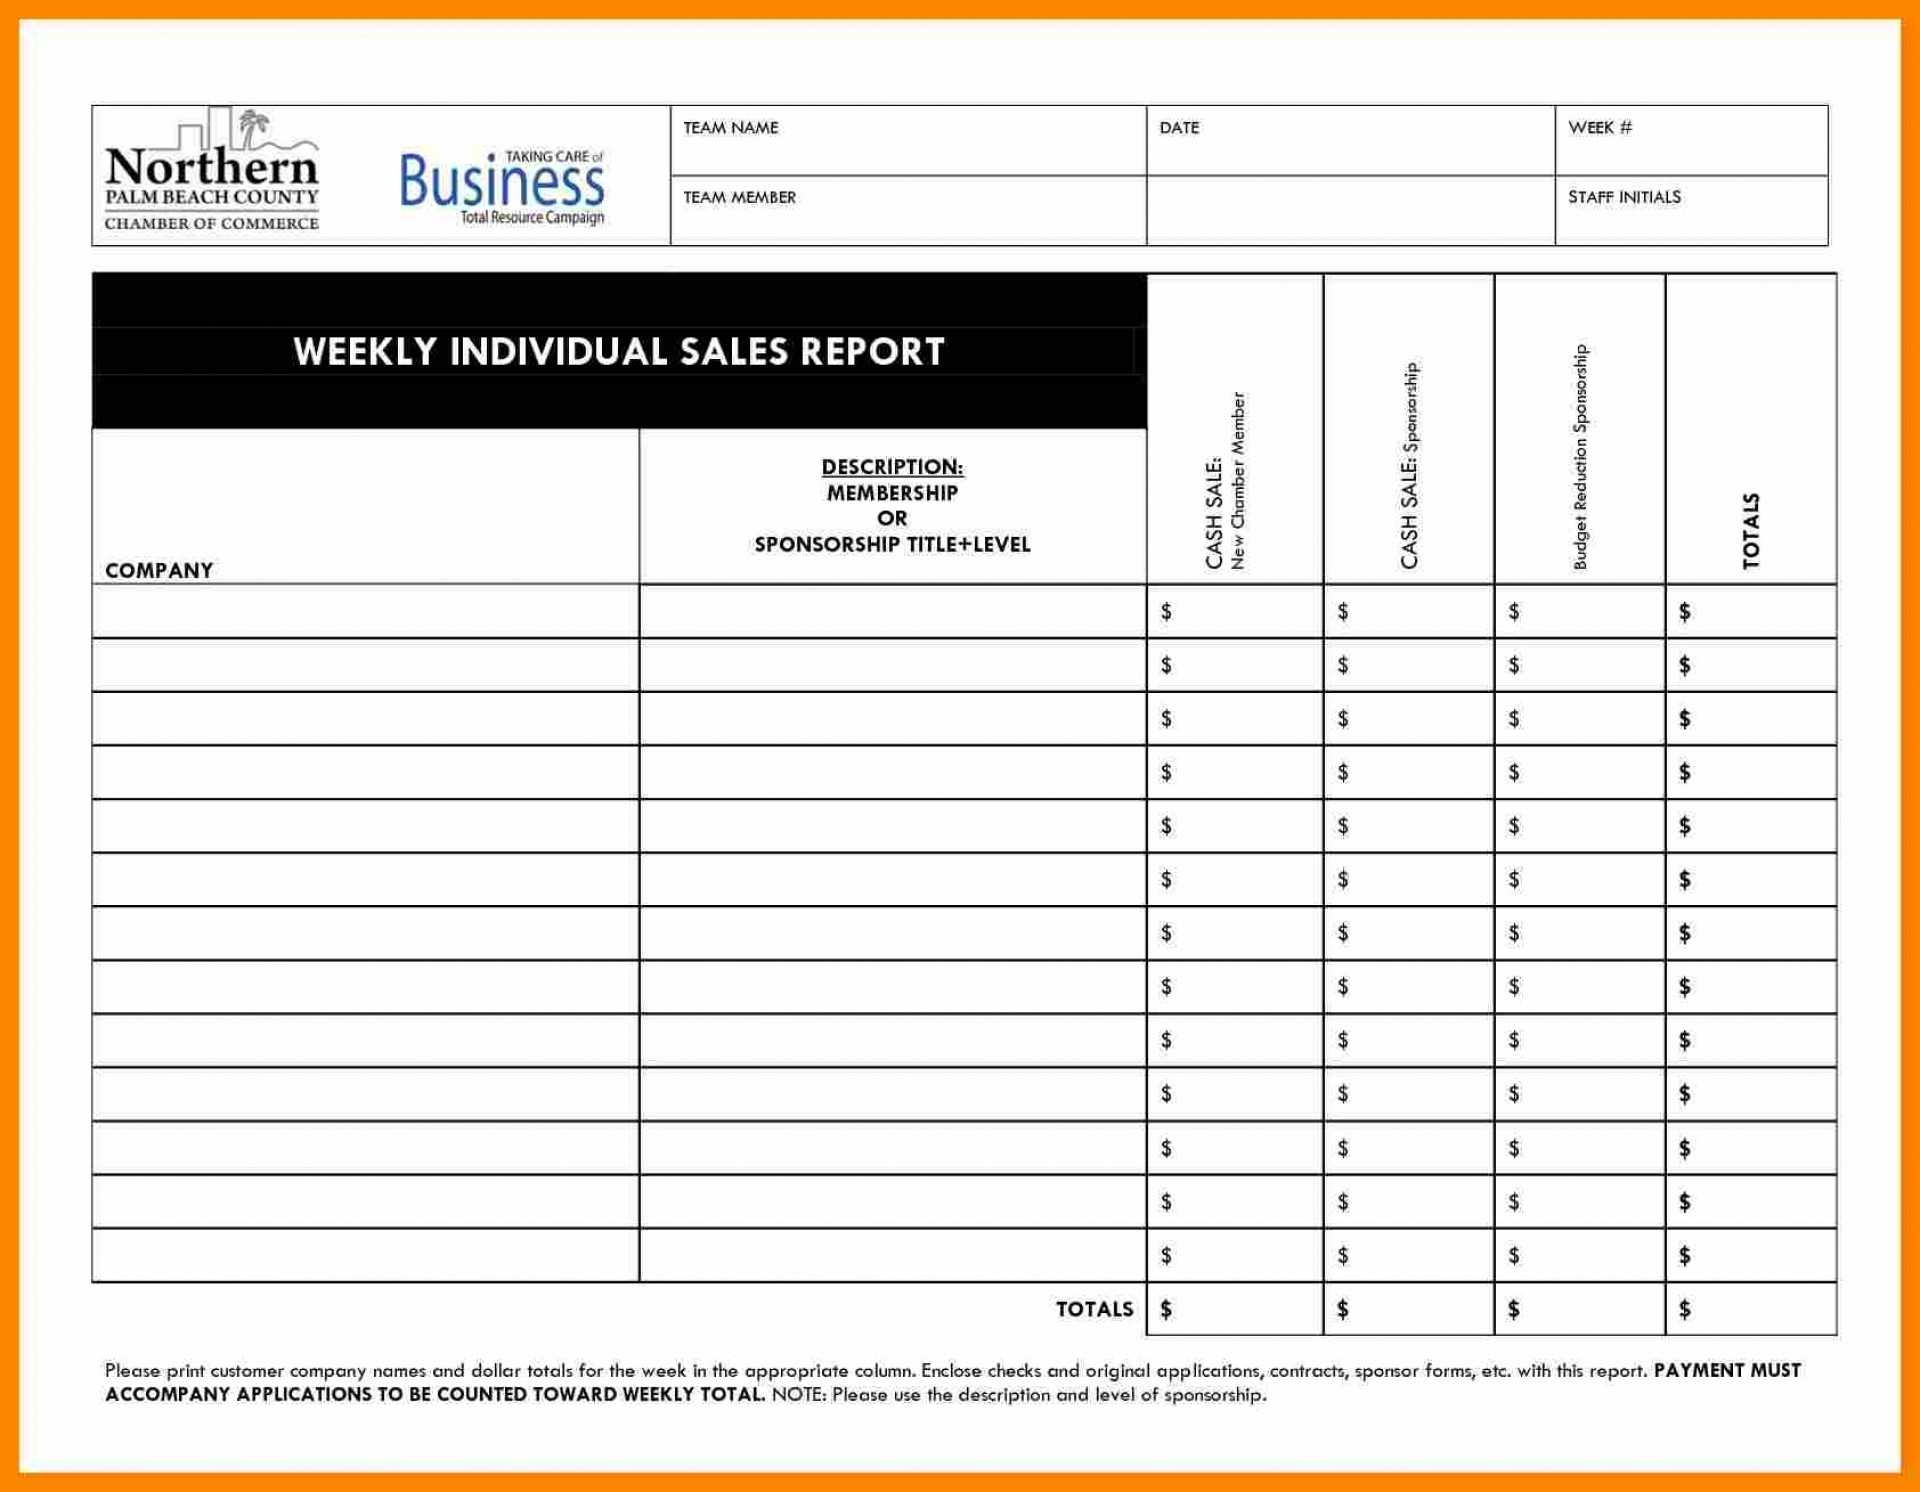 023 Template Ideas Sales Call Reporting Weekly Report intended for Sales Visit Report Template Downloads